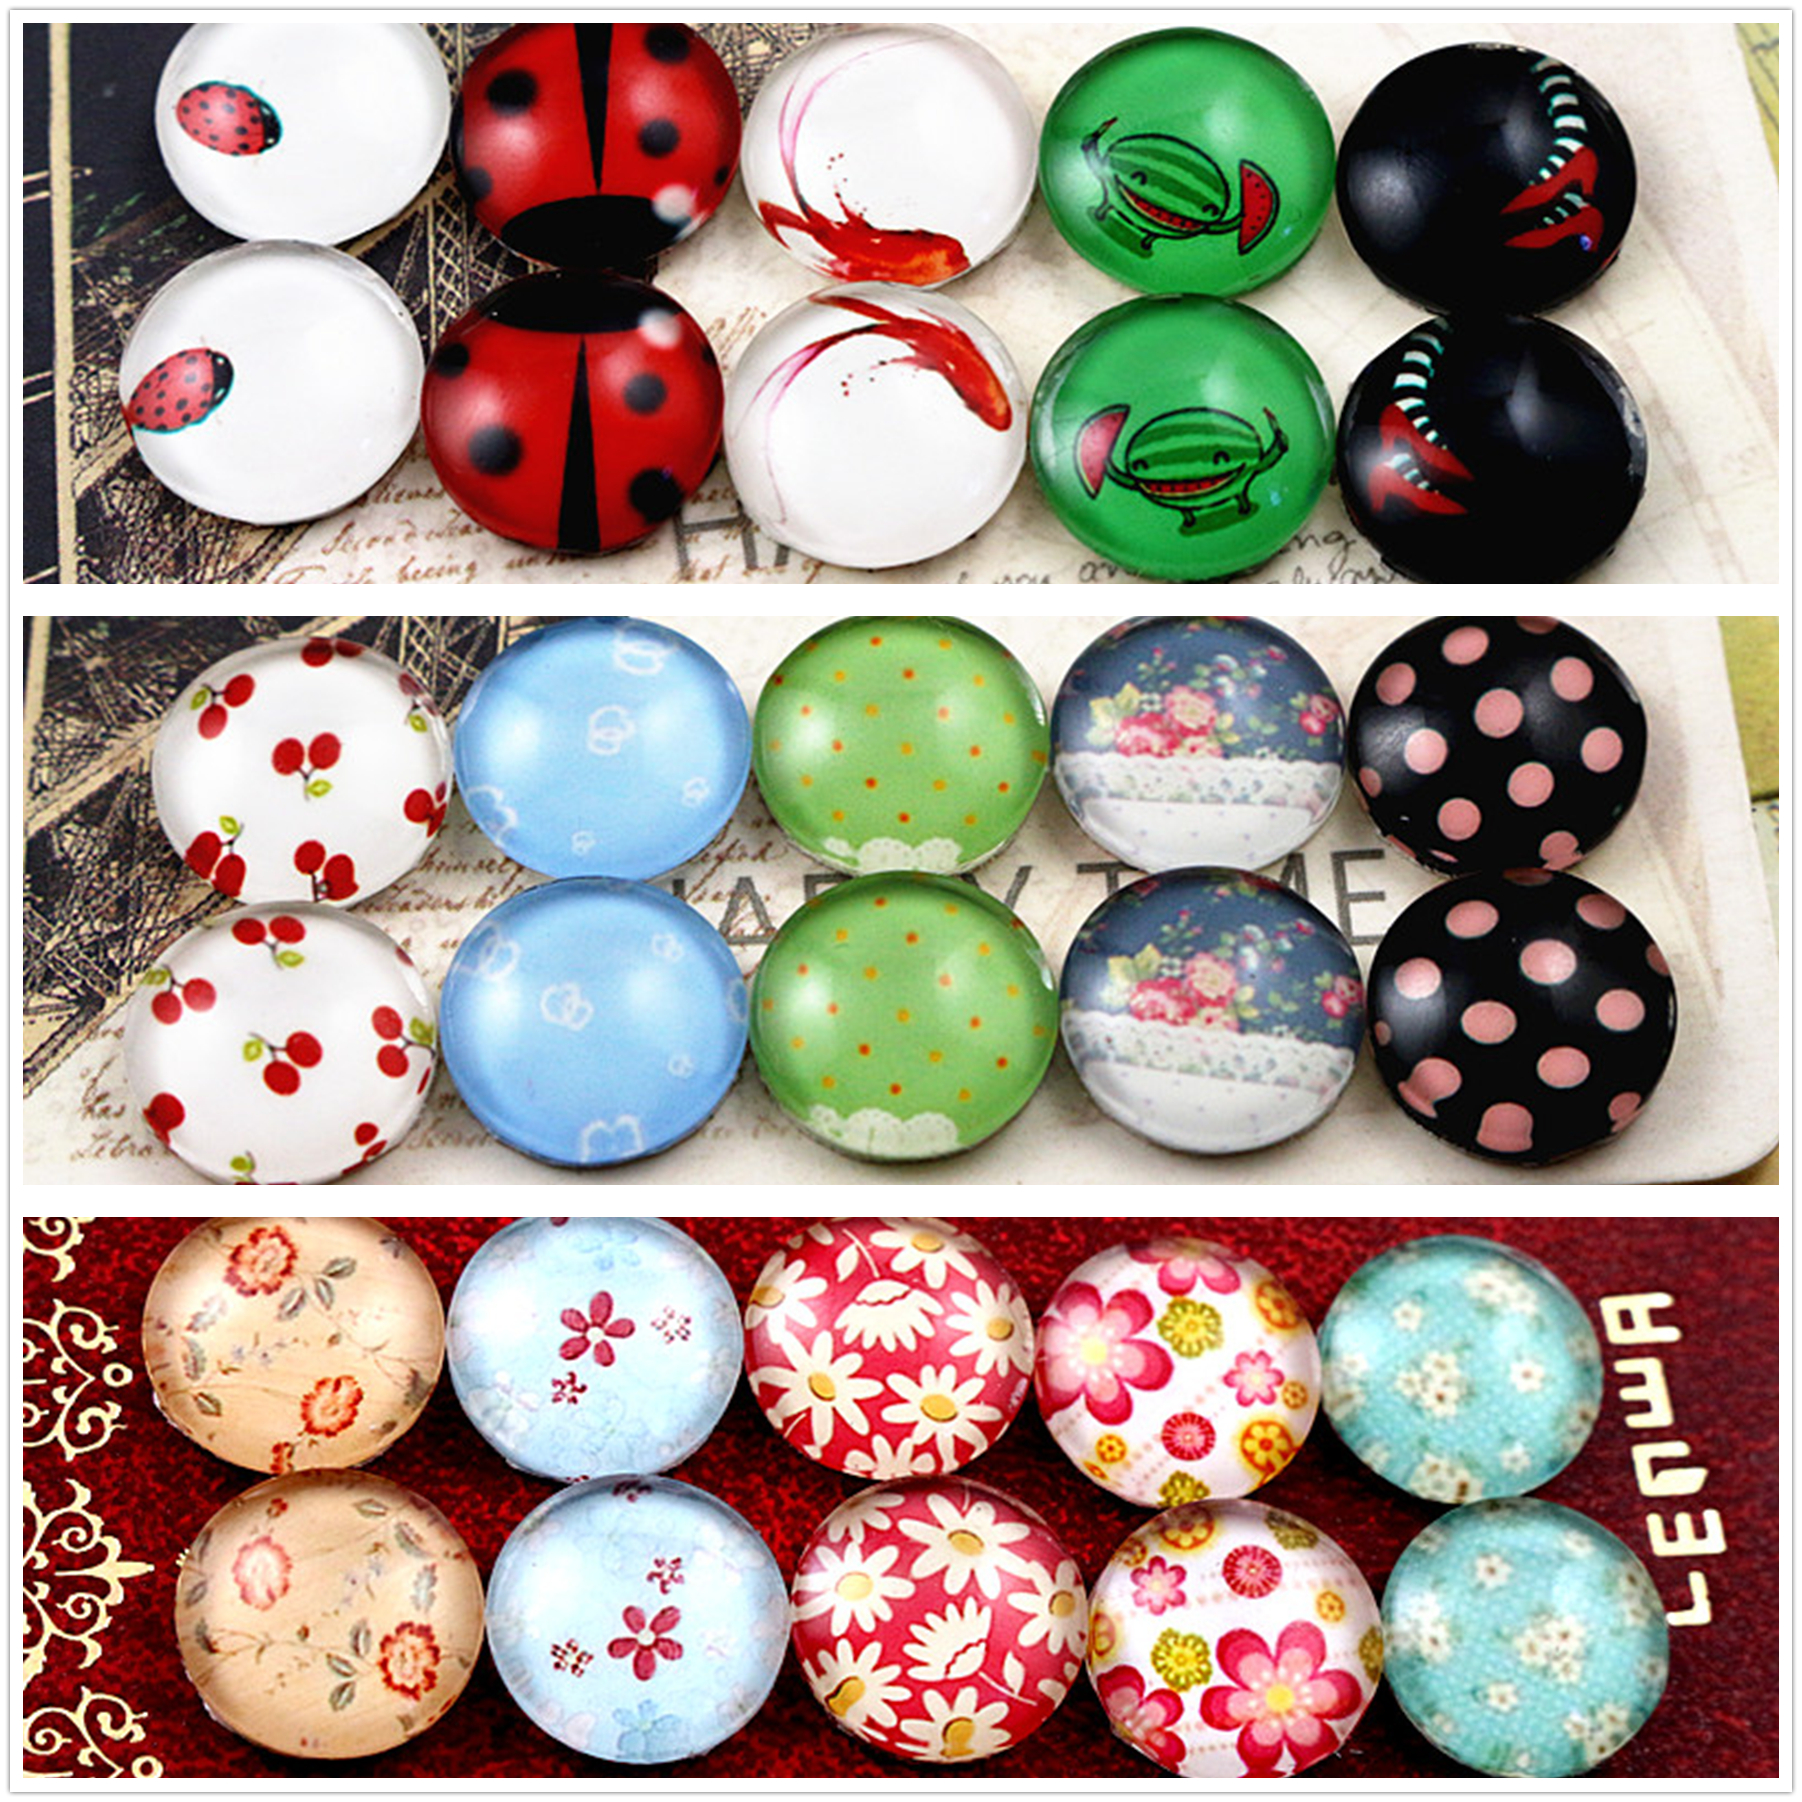 10pcs/lot (One Set) Three Style 12mm Fashion Pattern Handmade Glass Cabochons Pattern Domed Jewelry Accessories Supplies